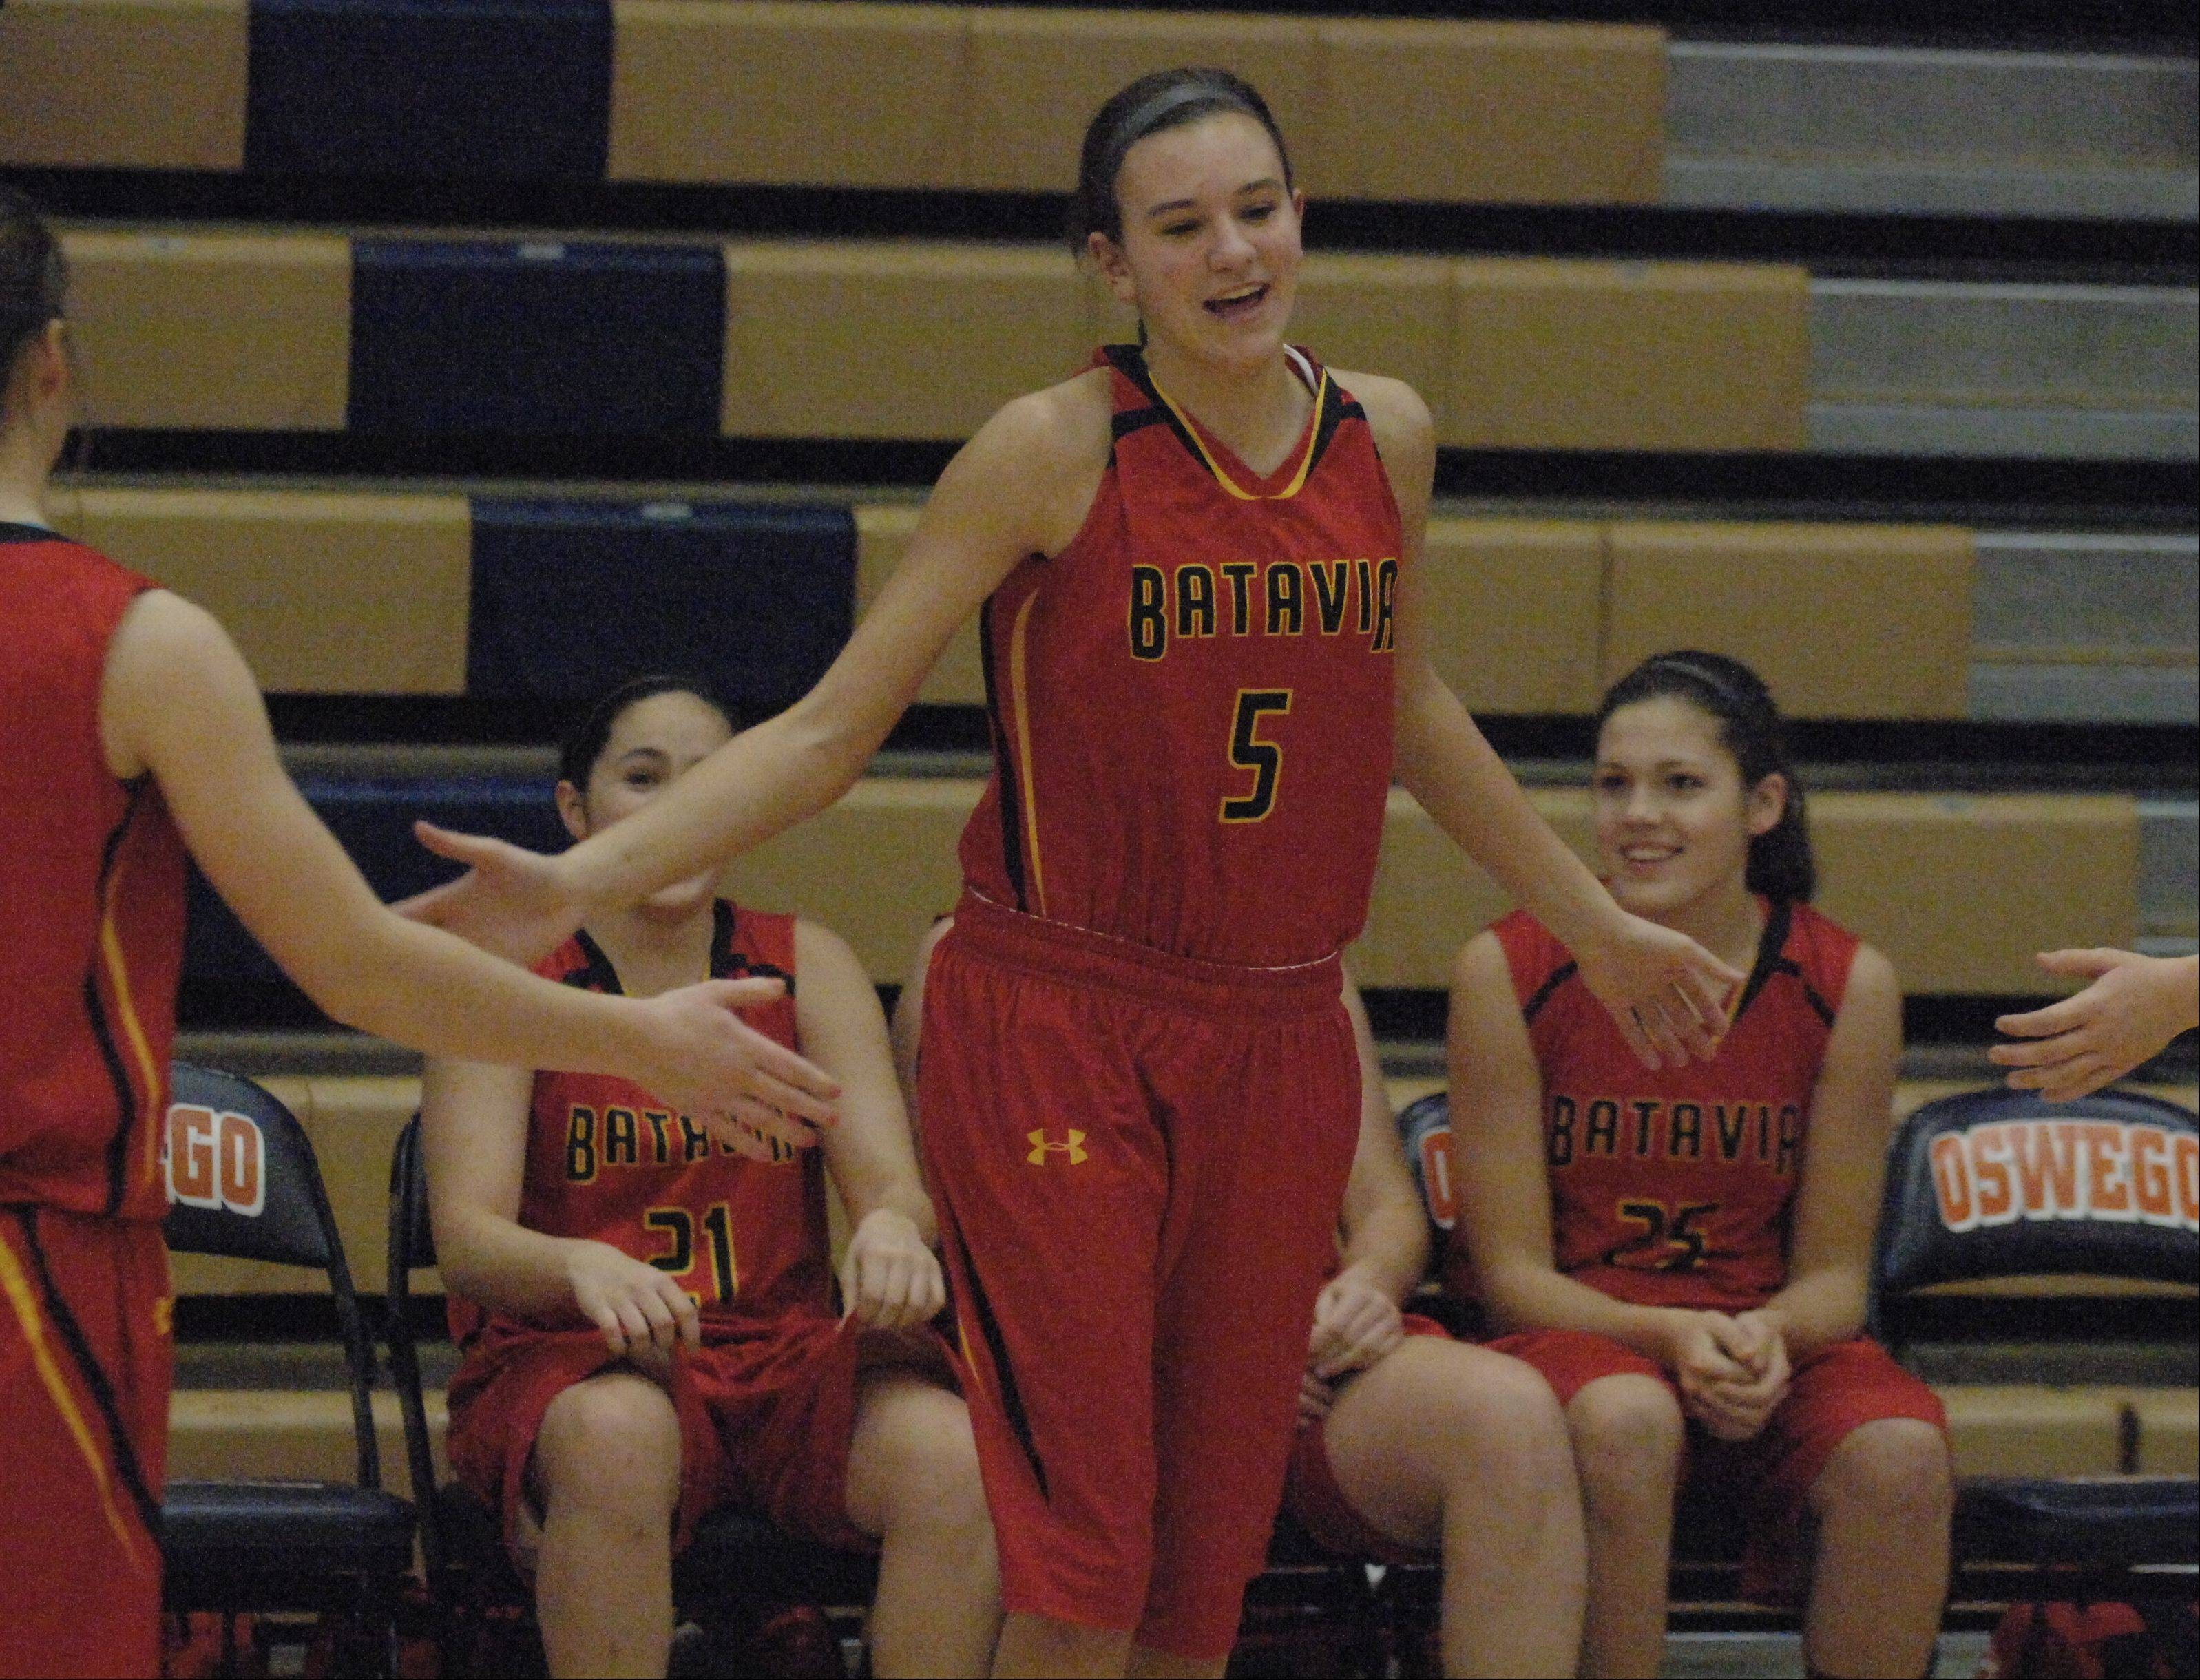 Liza Fruendt is introduced before Batavia's game Saturday.